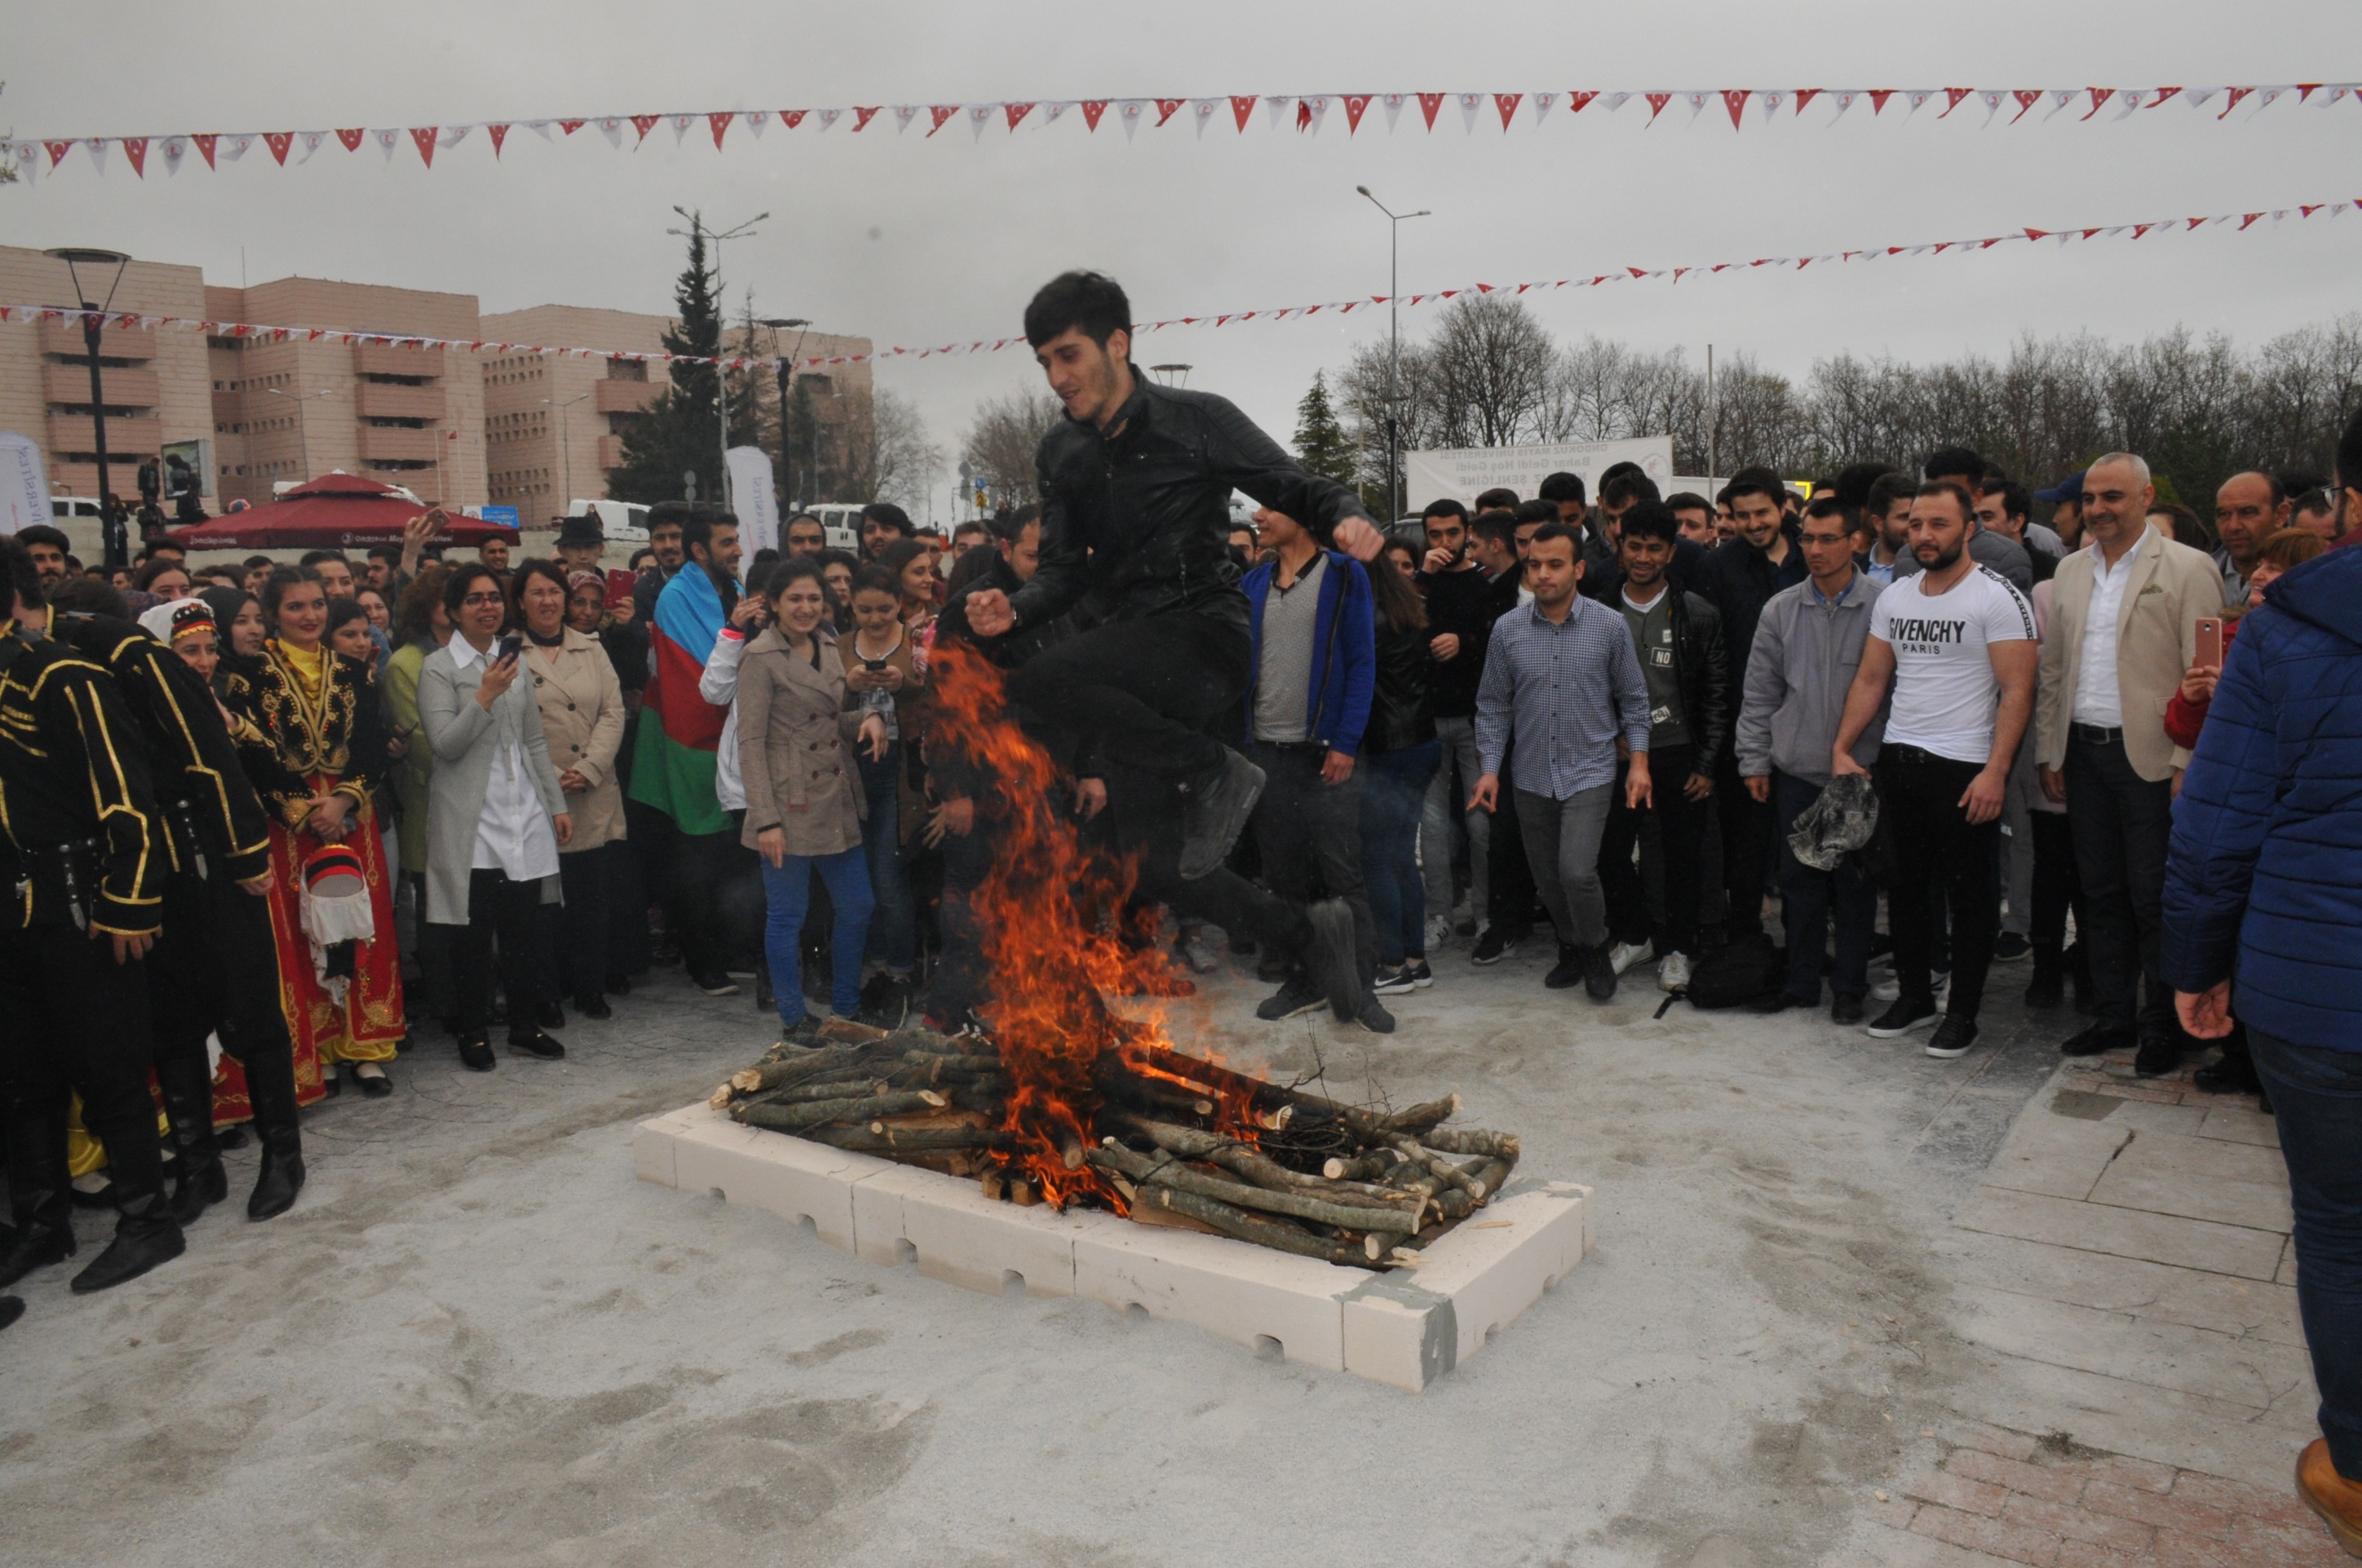 http://www.omu.edu.tr/sites/default/files/files/omu_family_enthusiastically_celebrated_newroz/dsc_0277.jpg